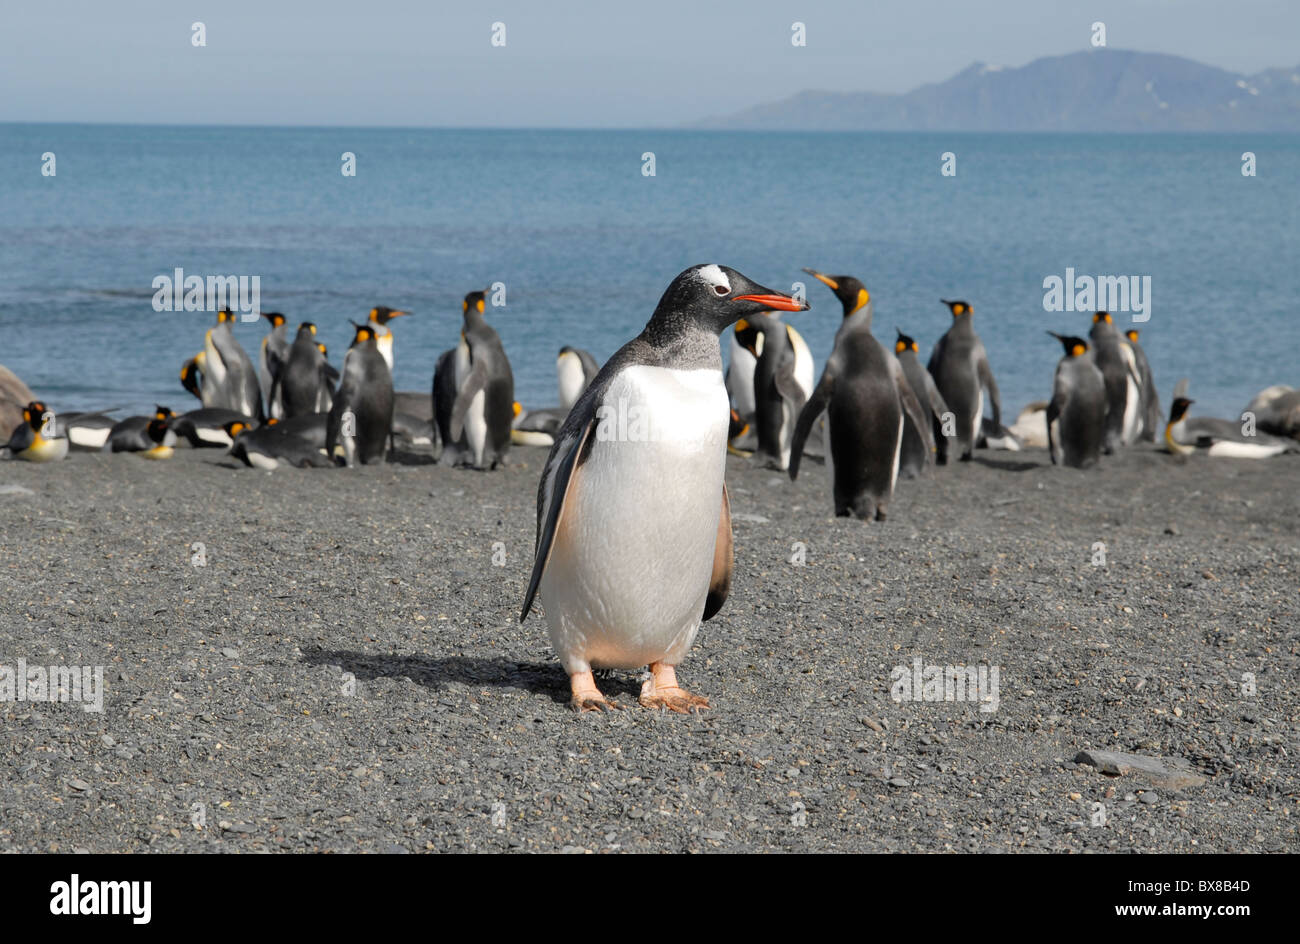 Gentoo Penguin (Pygoscelis papua) in front of King penguins at the beach, Gold Harbour, South Georgia Stock Photo